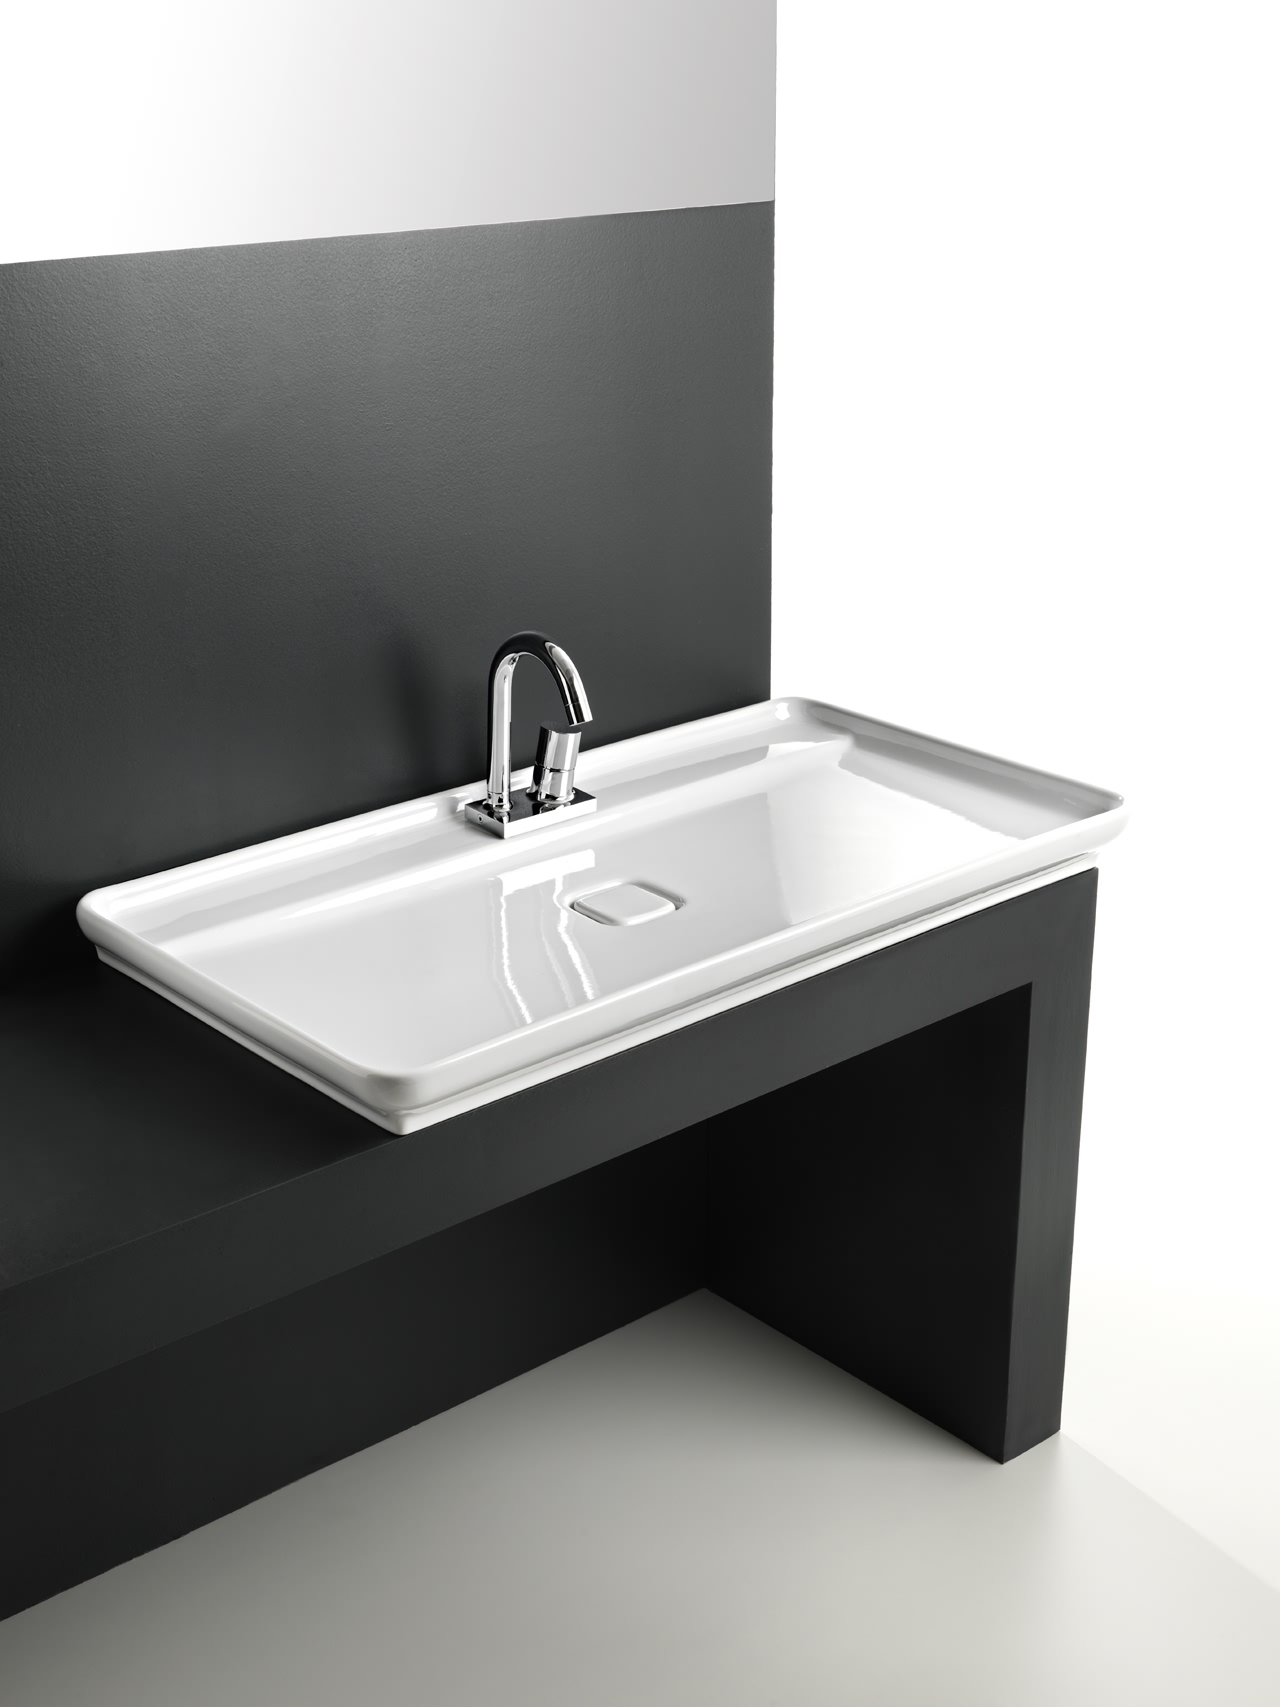 Bath Room Sinks : unique bathroom vessel sinks unique bathroom sinks canada